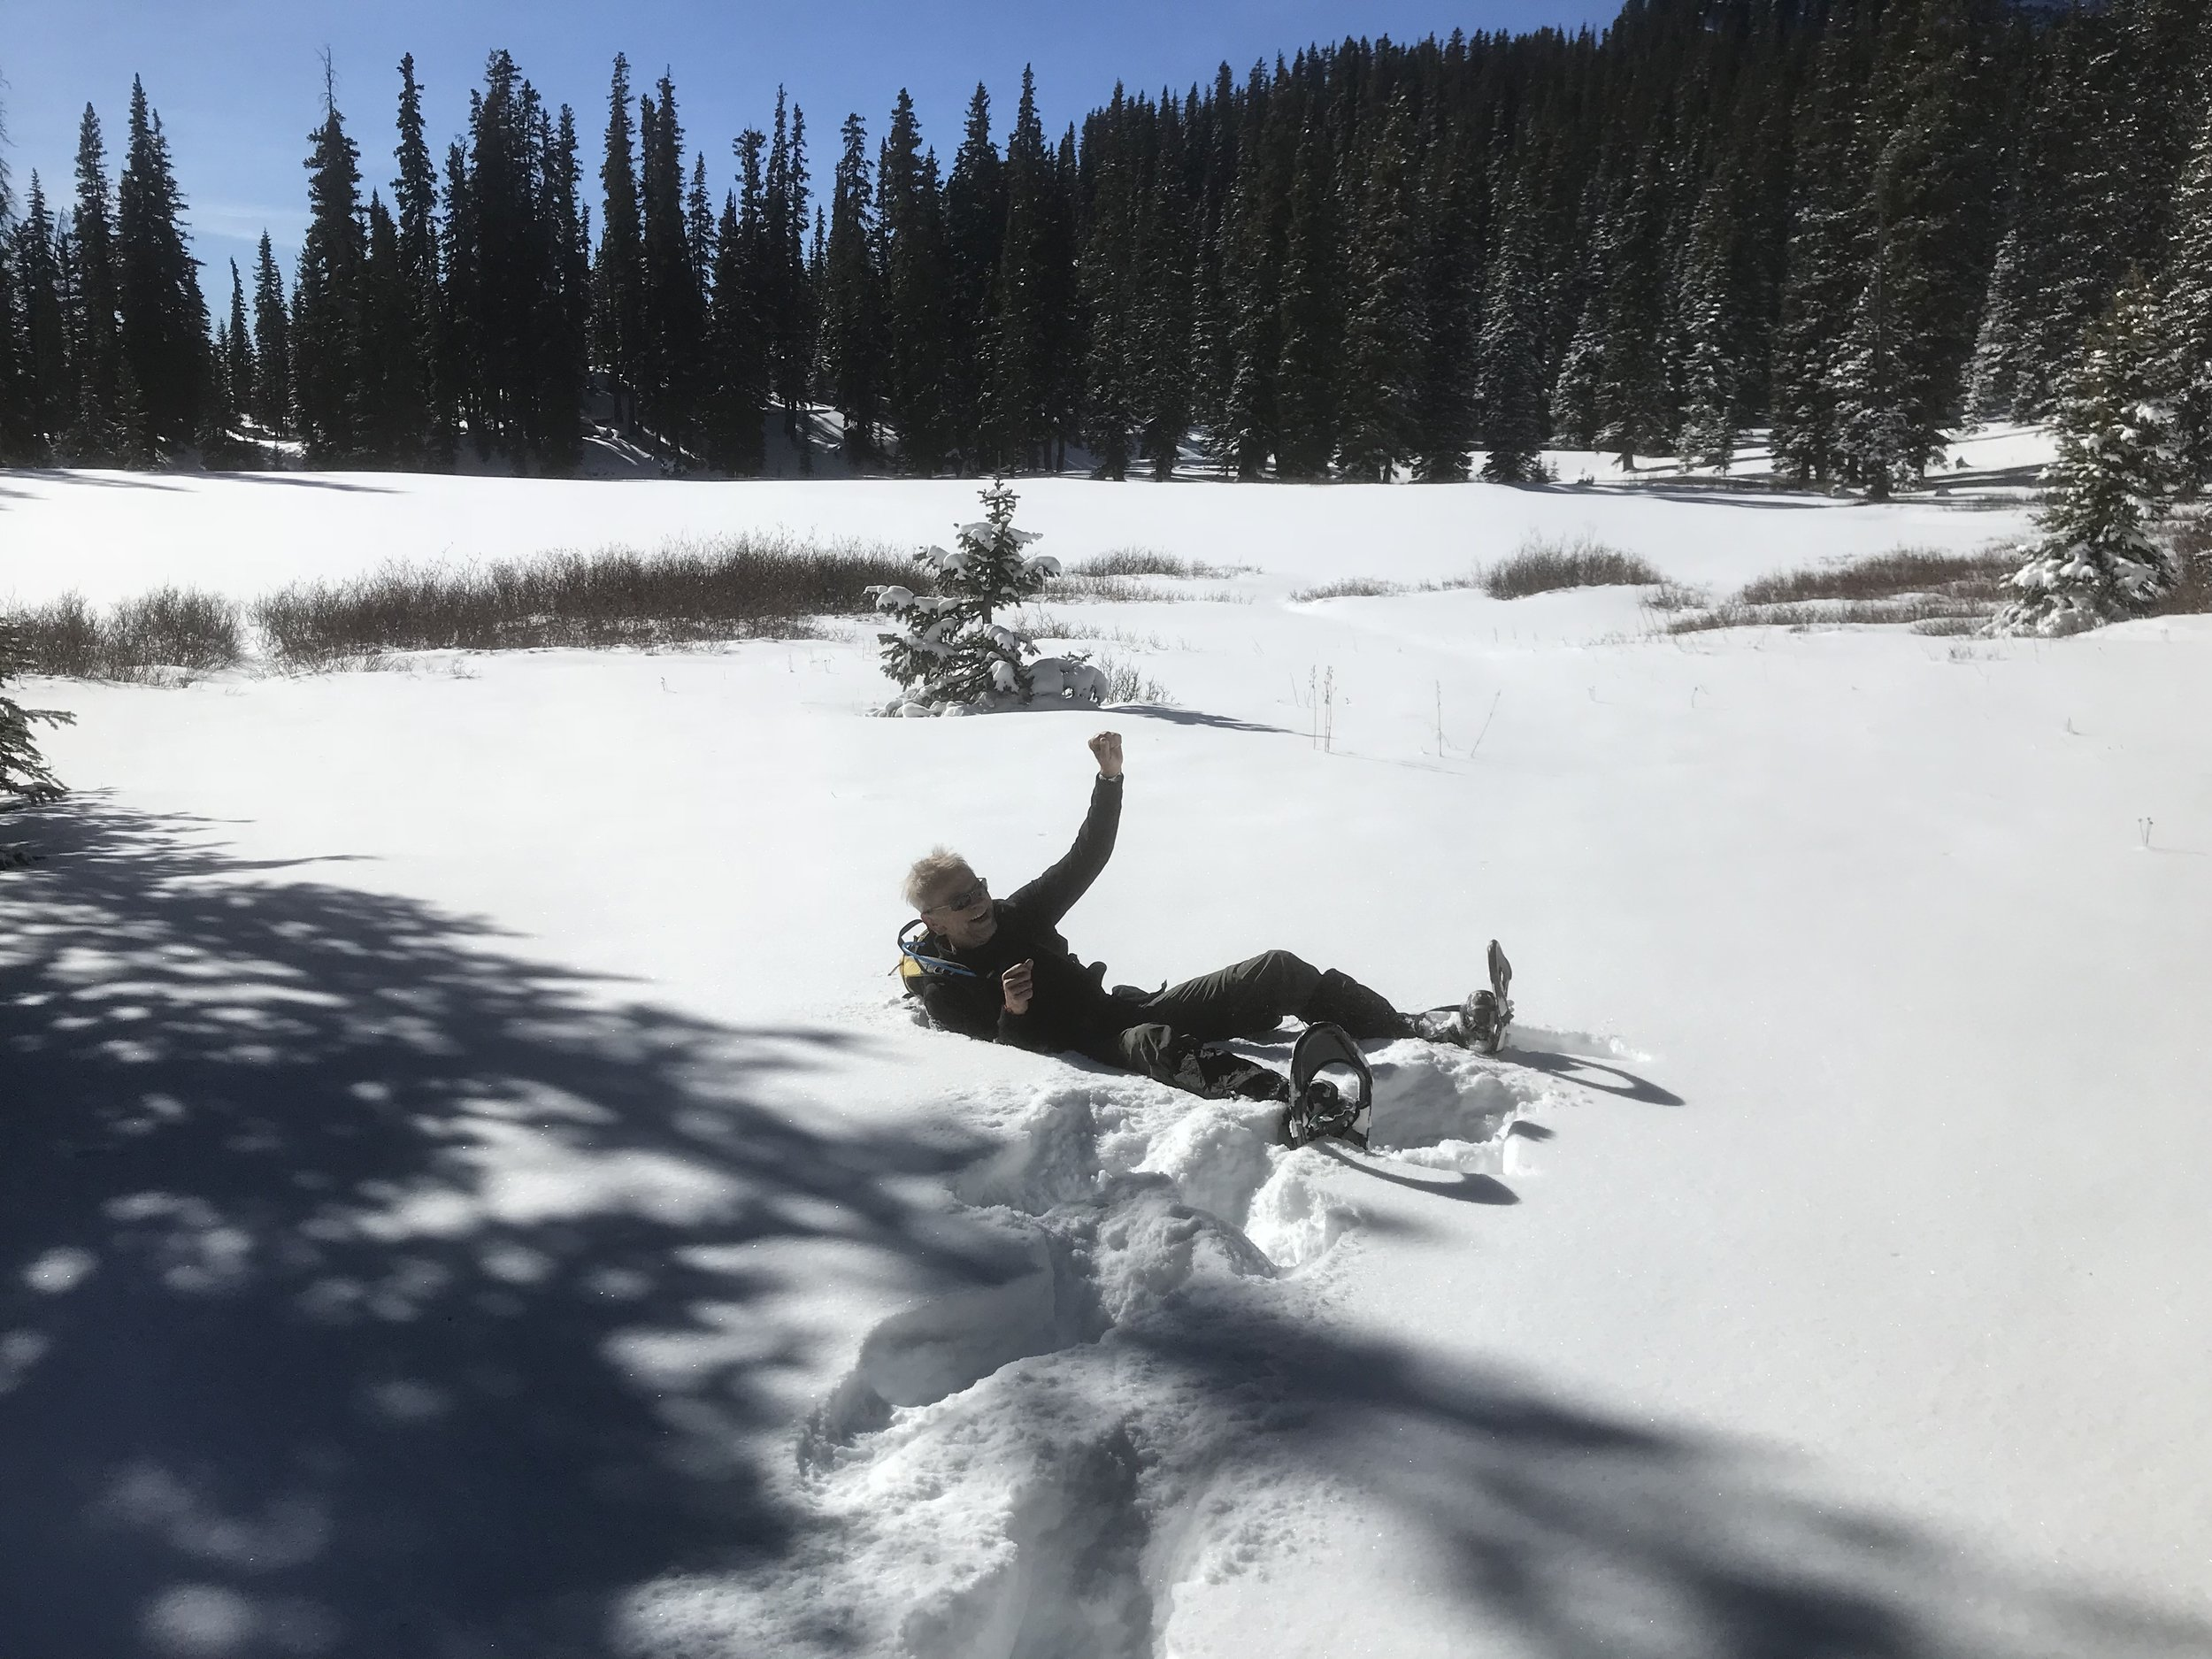 As a novice, I quickly learned that turning around is not so easy with snowshoes on.